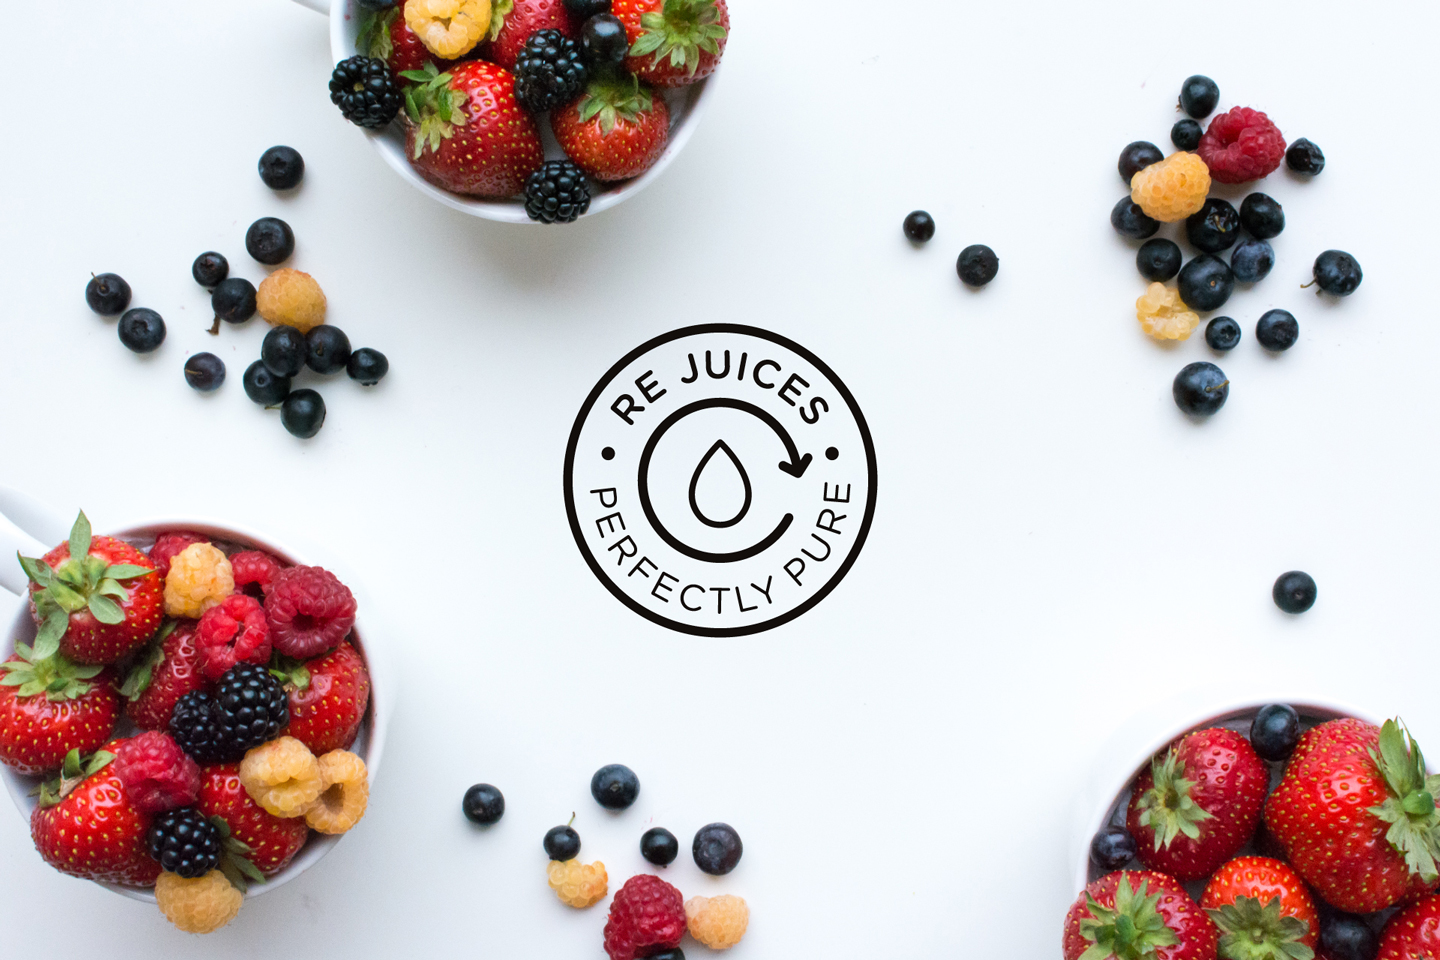 ReJuices_Branding_1